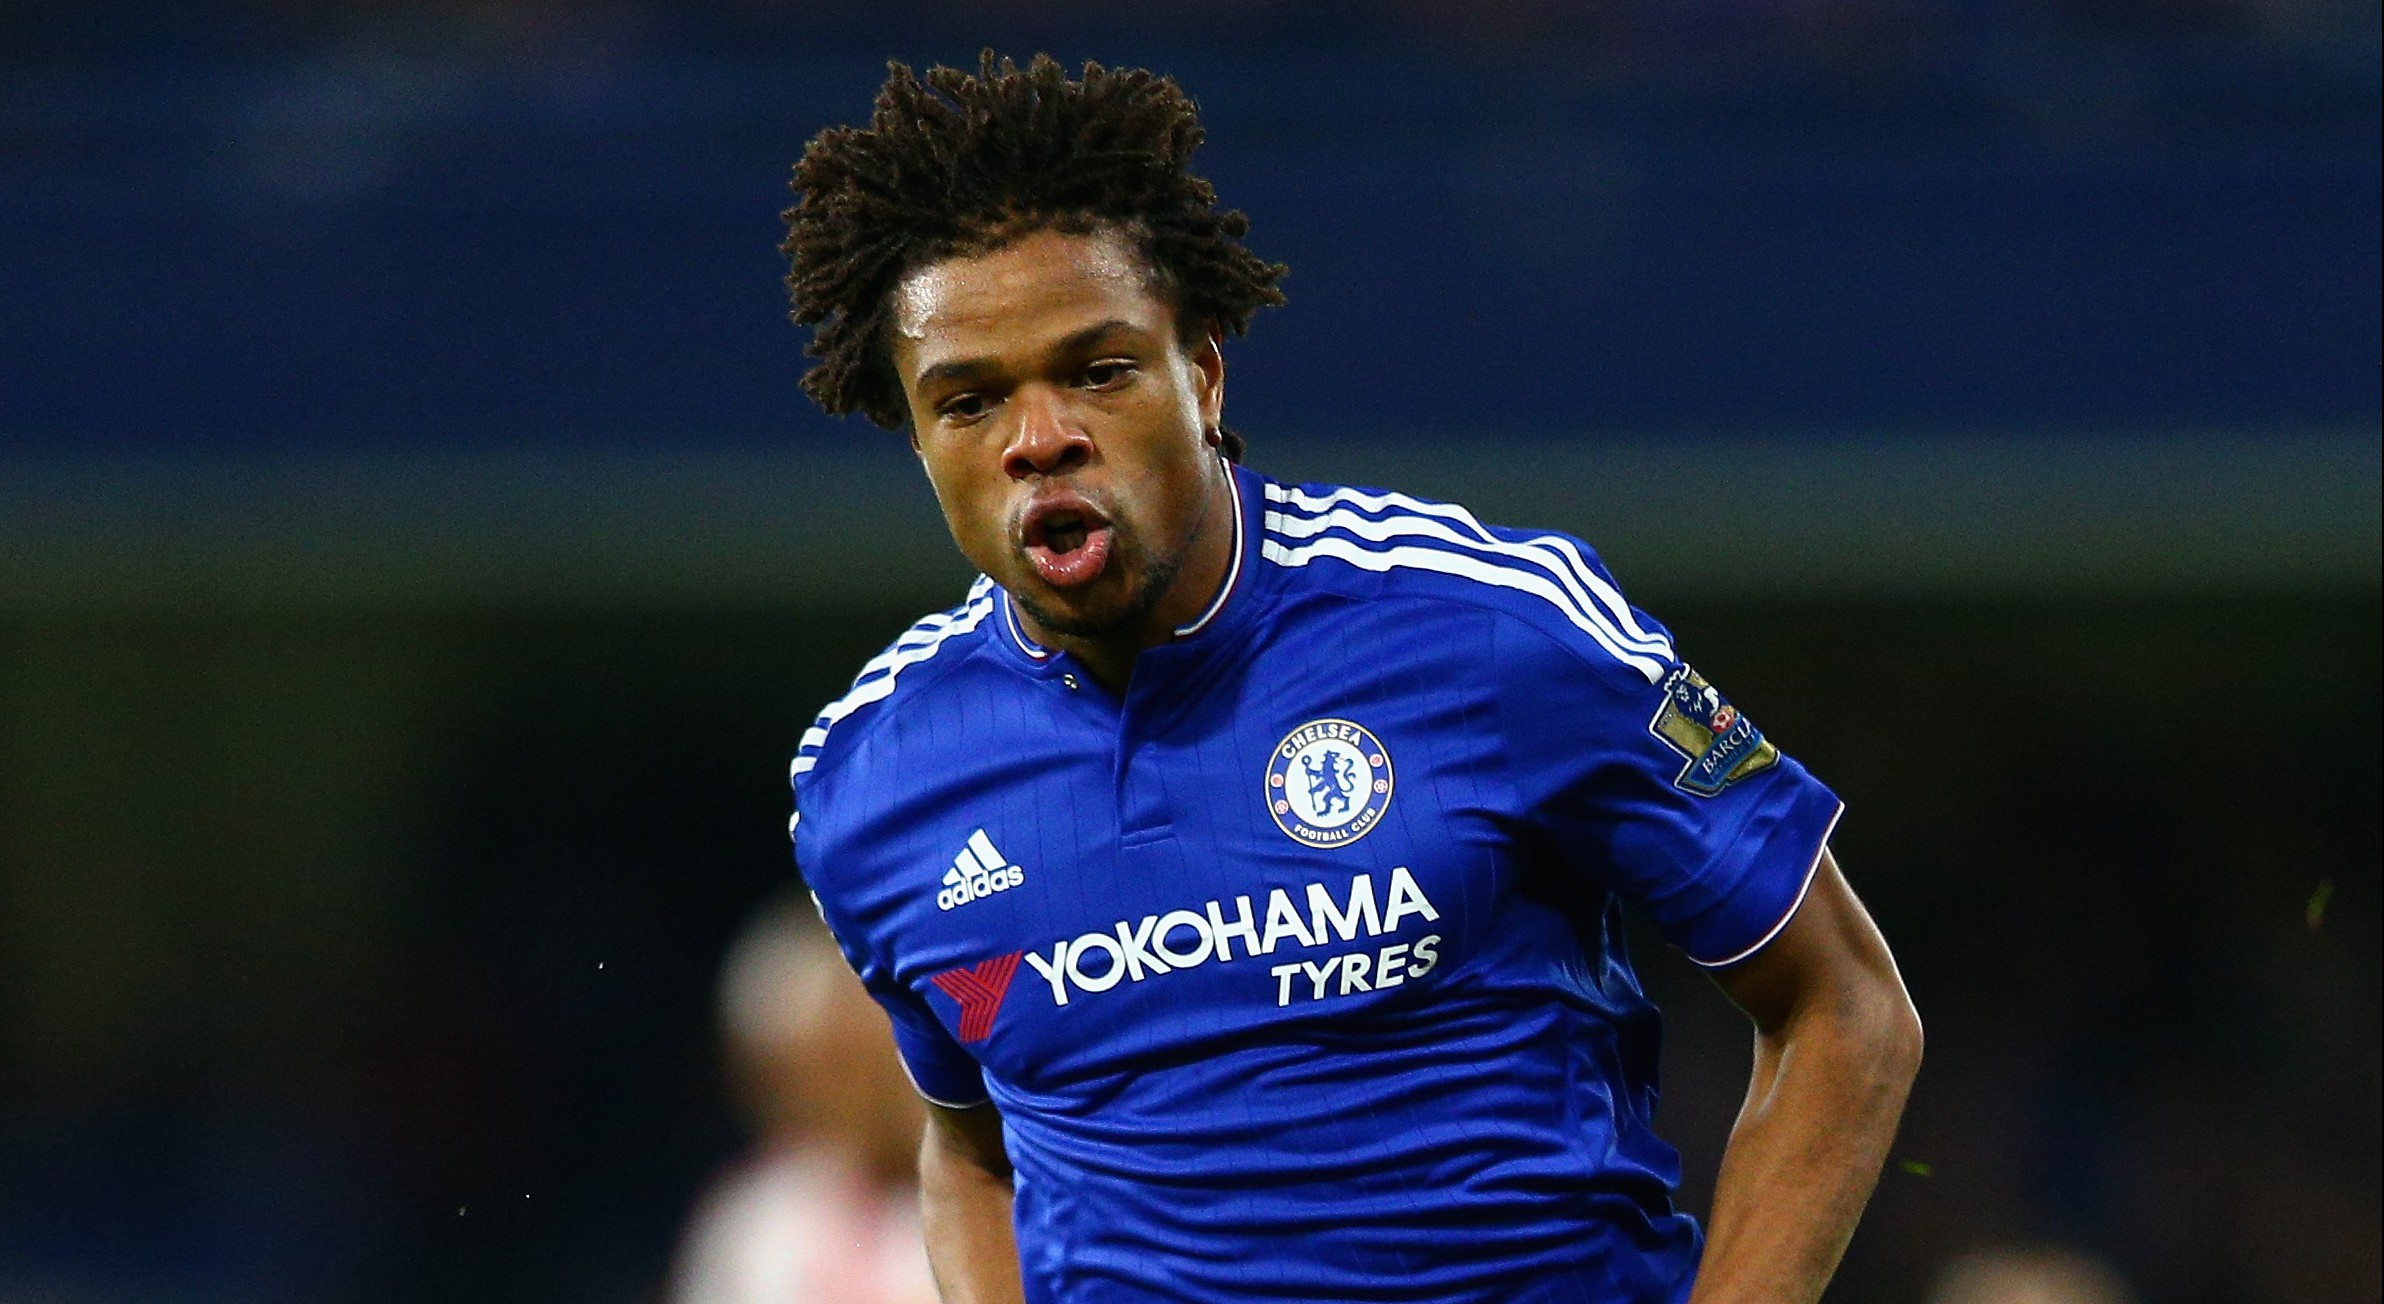 Crystal Palace lead race to sign Chelsea forward Loic Remy